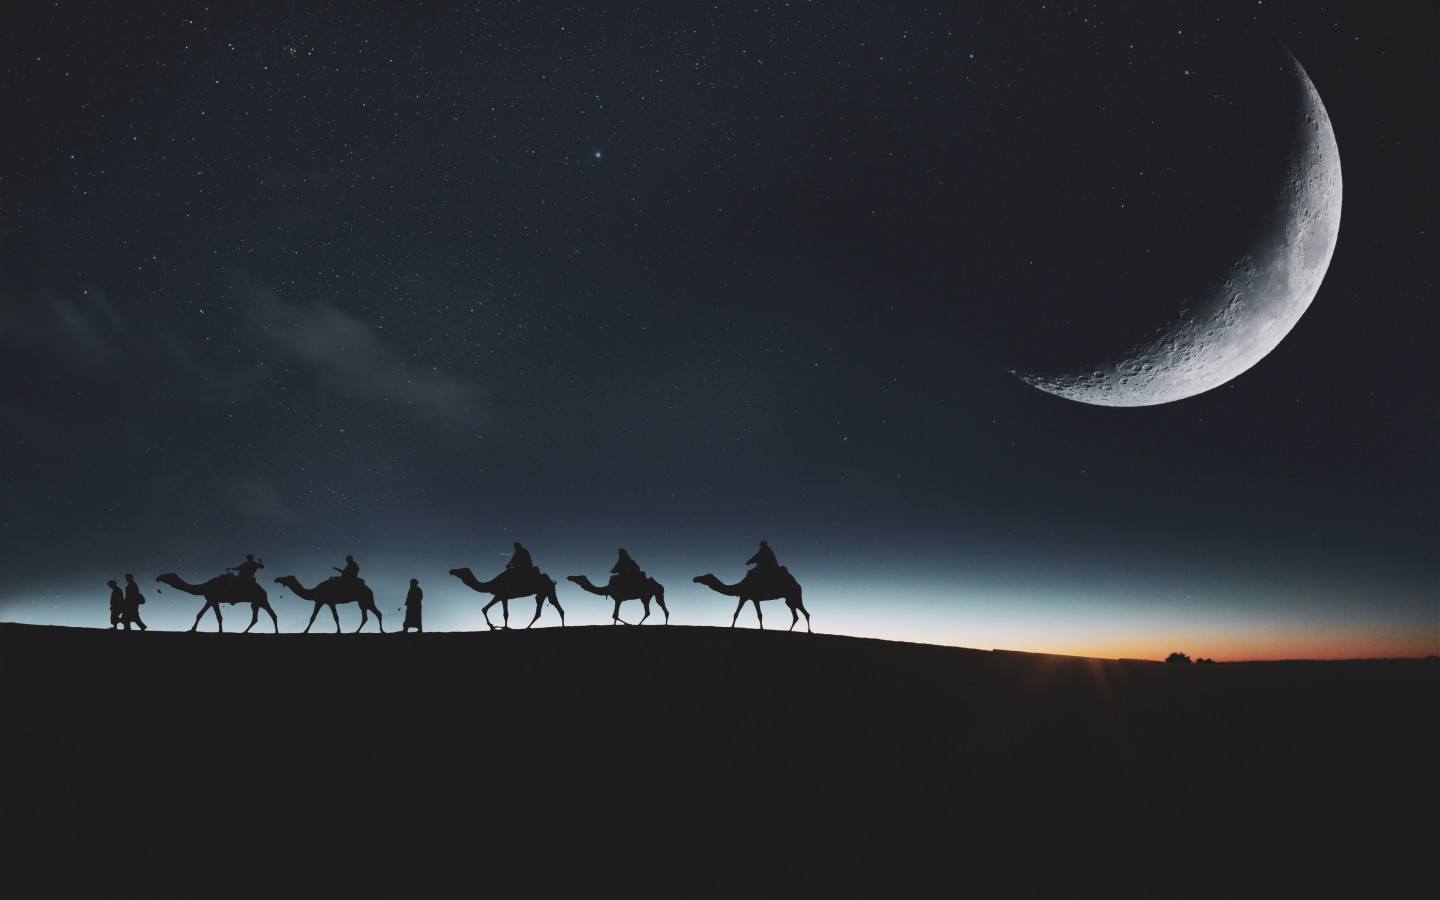 Traveling through desert on camels wallpaper 1440x900